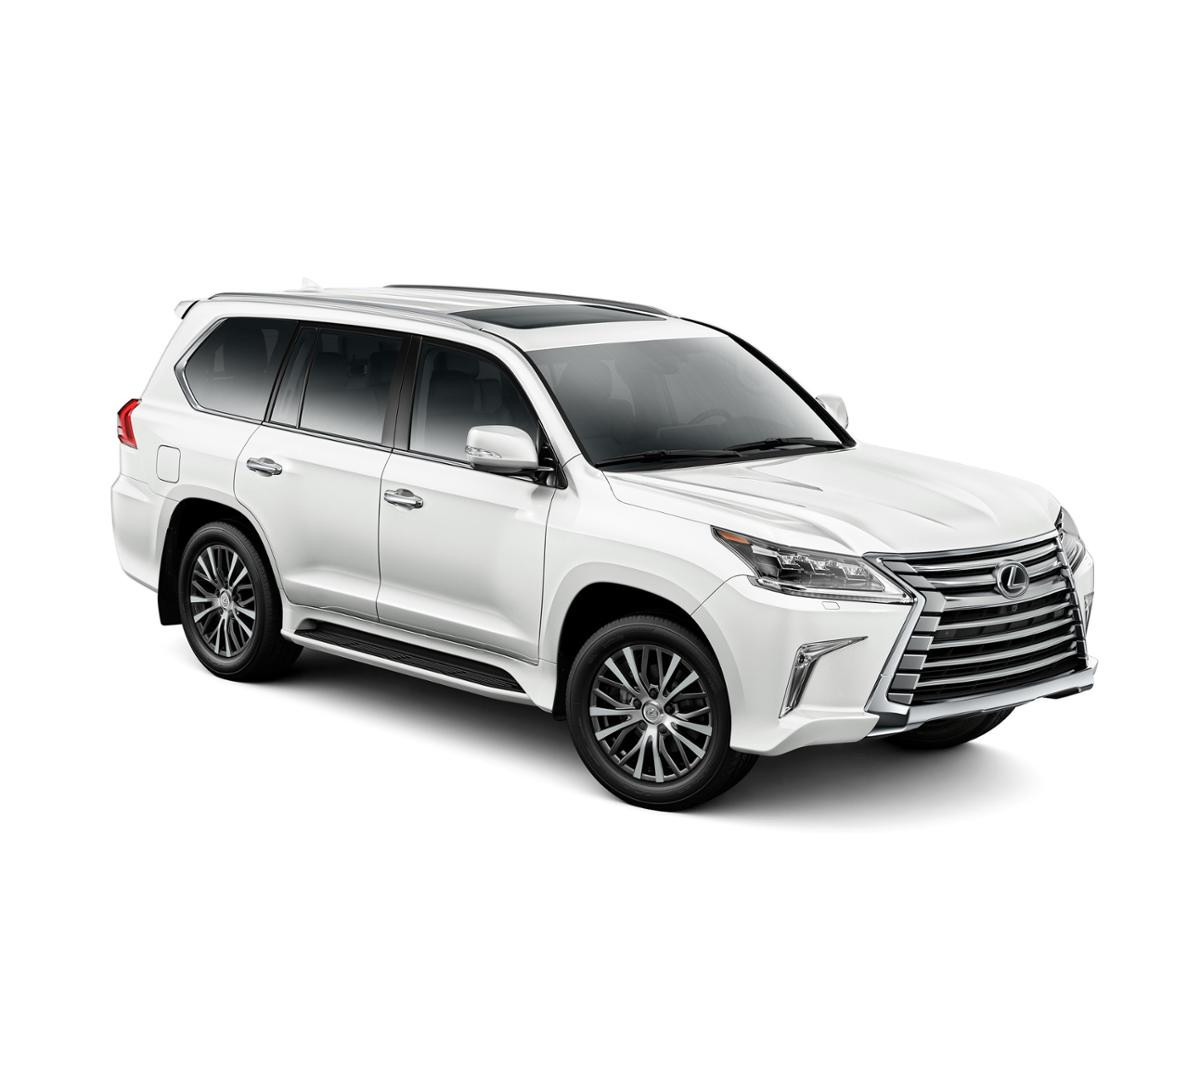 2018 Lexus LX 570 Vehicle Photo in Bedford, NH 03110